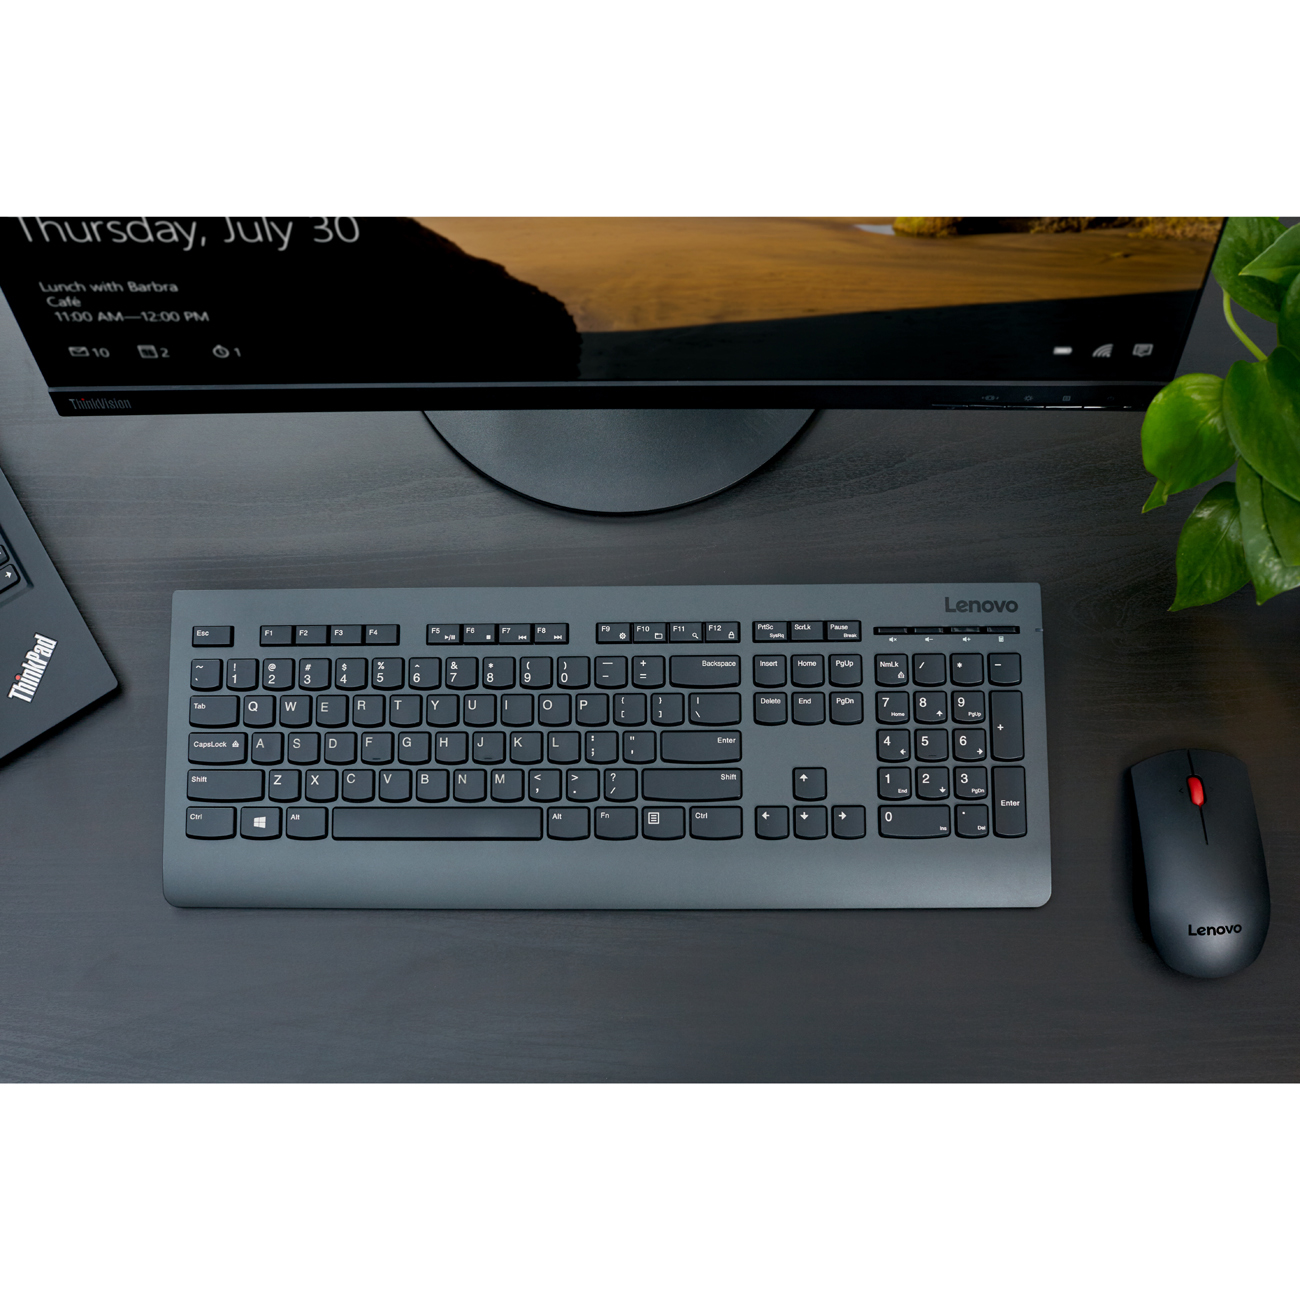 b4d293510cb antonline.com - Lenovo Professional Wireless Keyboard and Mouse Combo